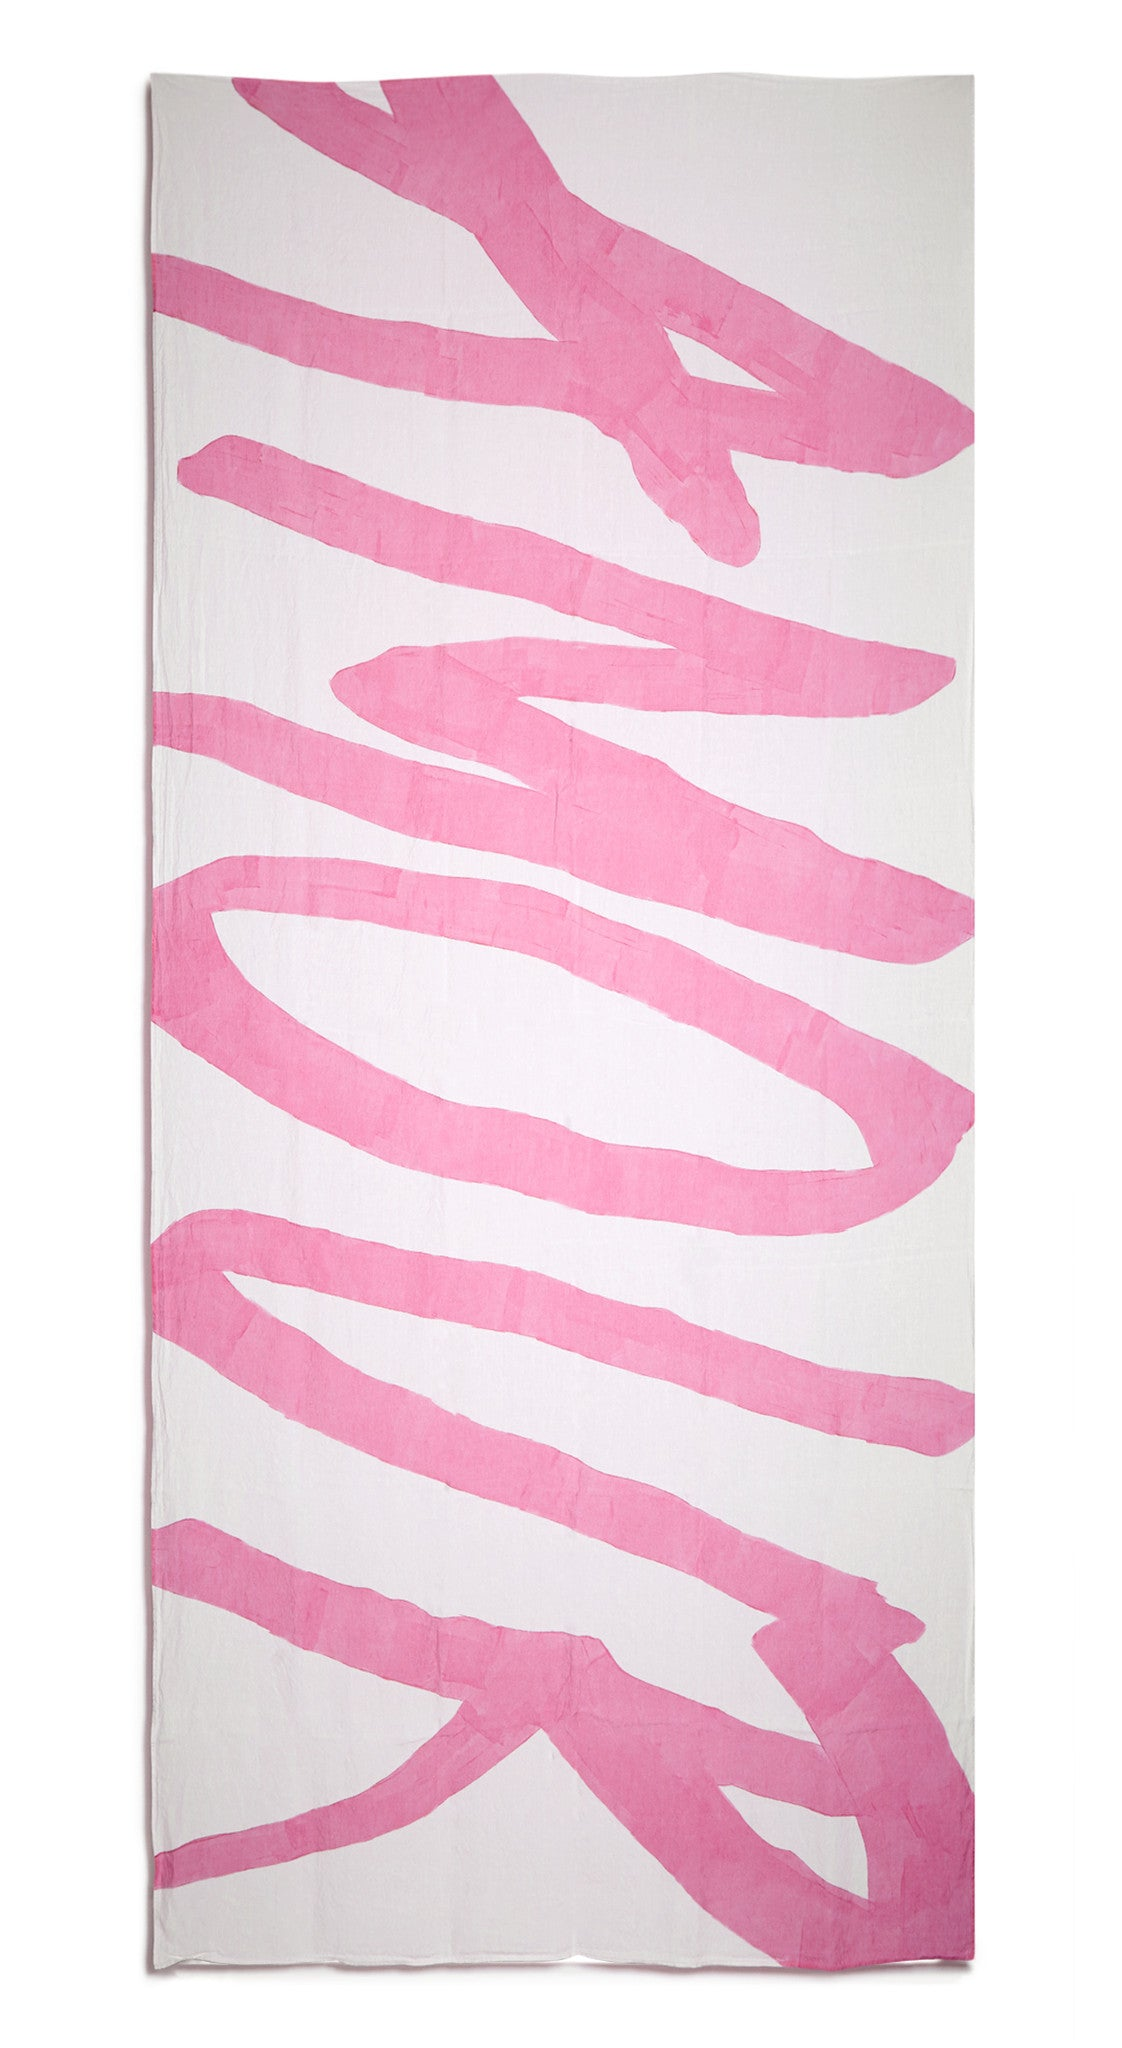 Amour Word Linen Tablecloth in Rose Pink